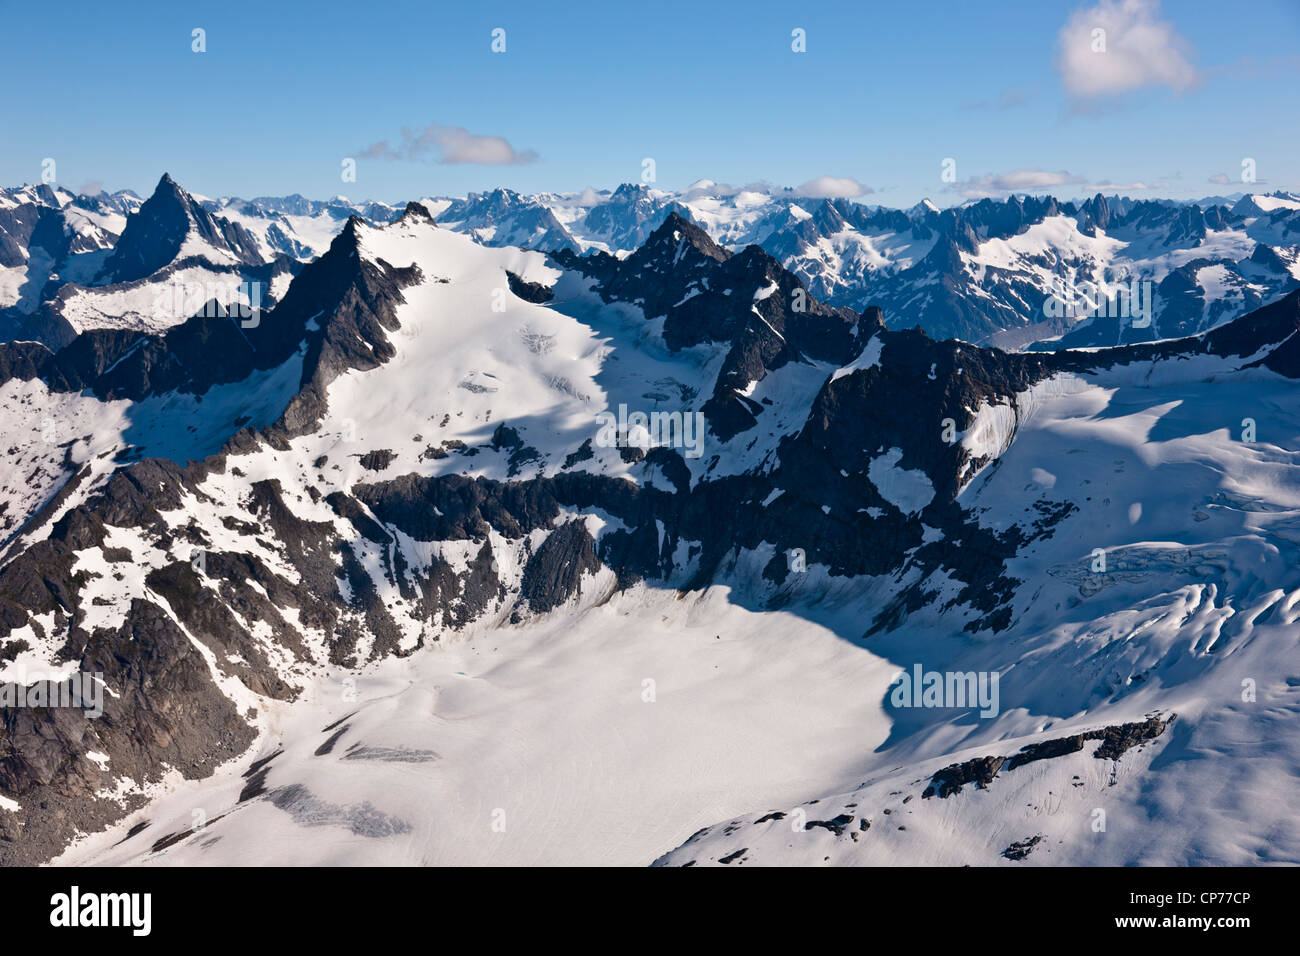 Aerial view of mountains and glaciers in the Coastal Mountain Range north of Haines, Southeast Alaska, Summer - Stock Image